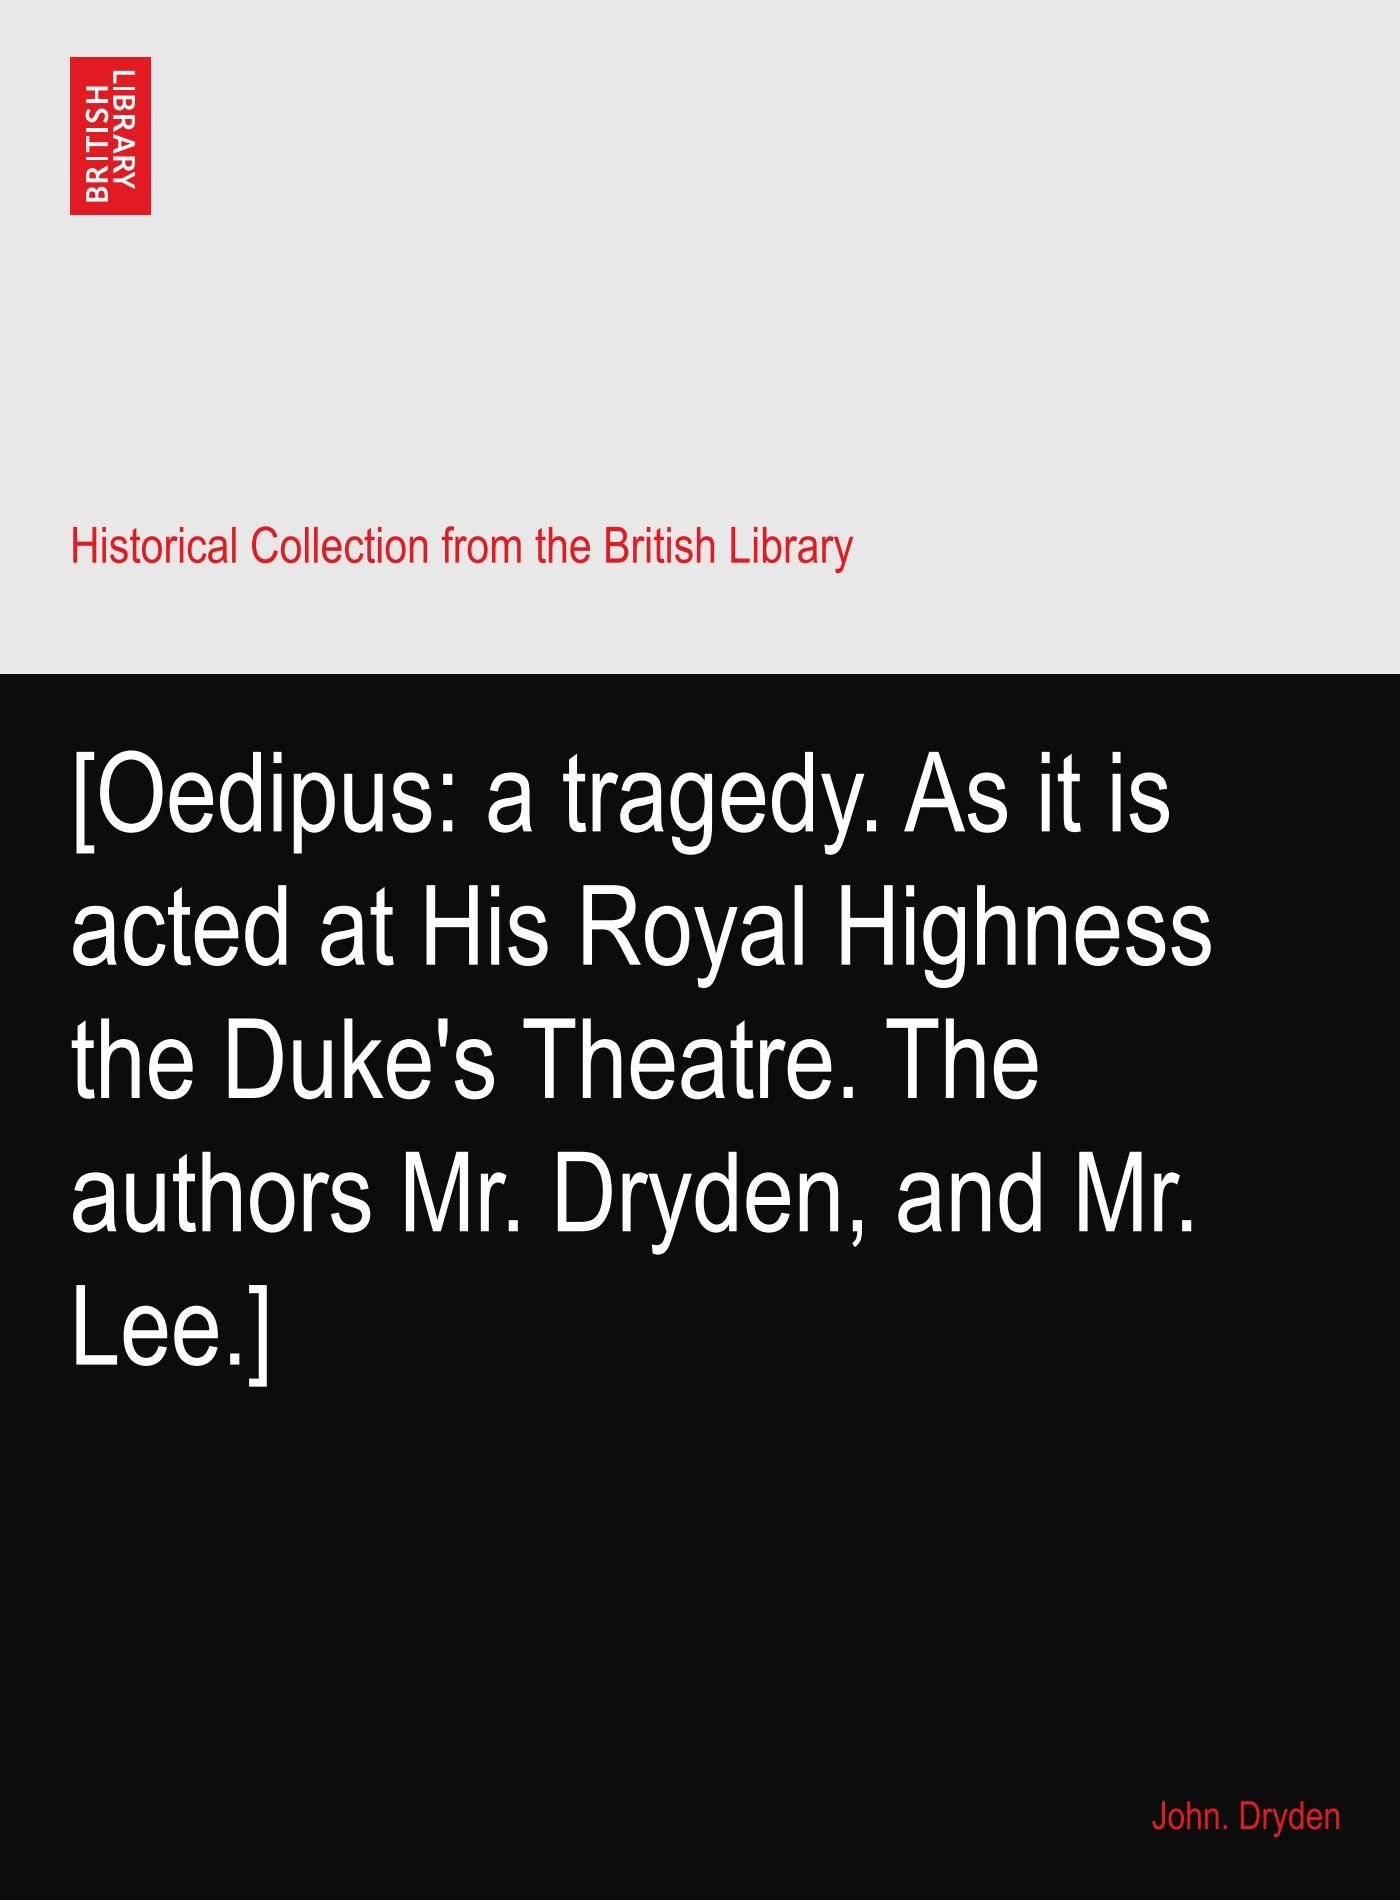 Download [Oedipus: a tragedy. As it is acted at His Royal Highness the Duke's Theatre. The authors Mr. Dryden, and Mr. Lee.] pdf